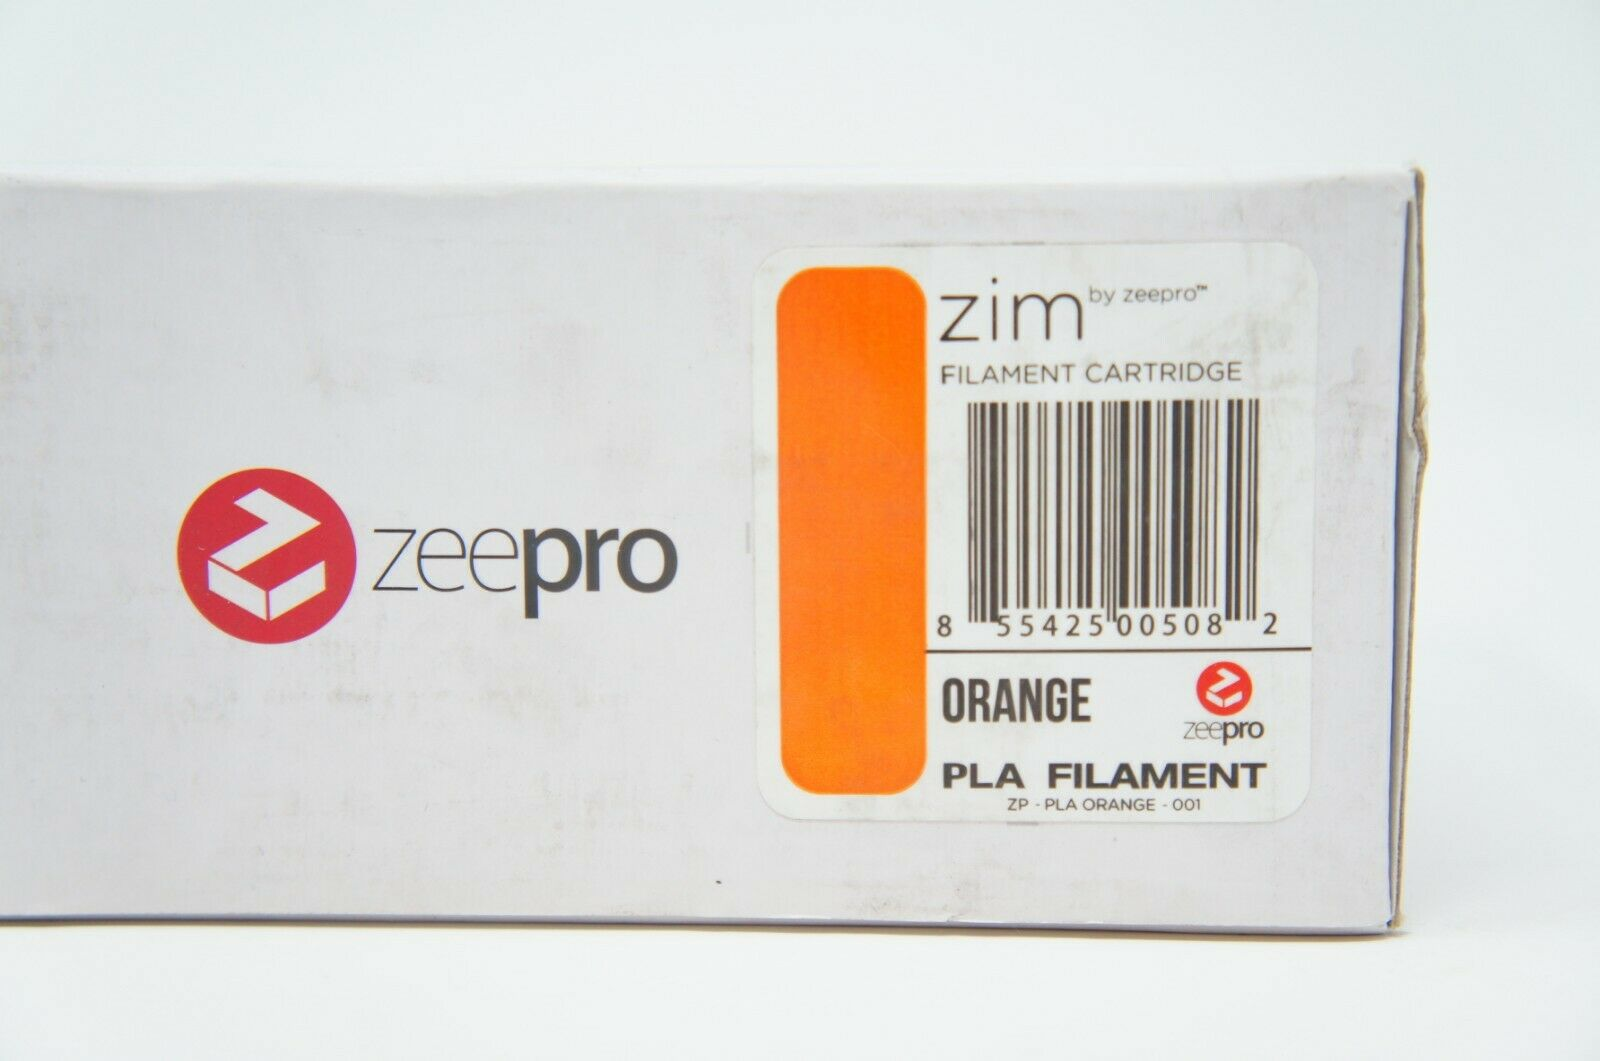 Zeepro ABS Plastic Filament Cartridge, 1.75mm Diameter, 250g